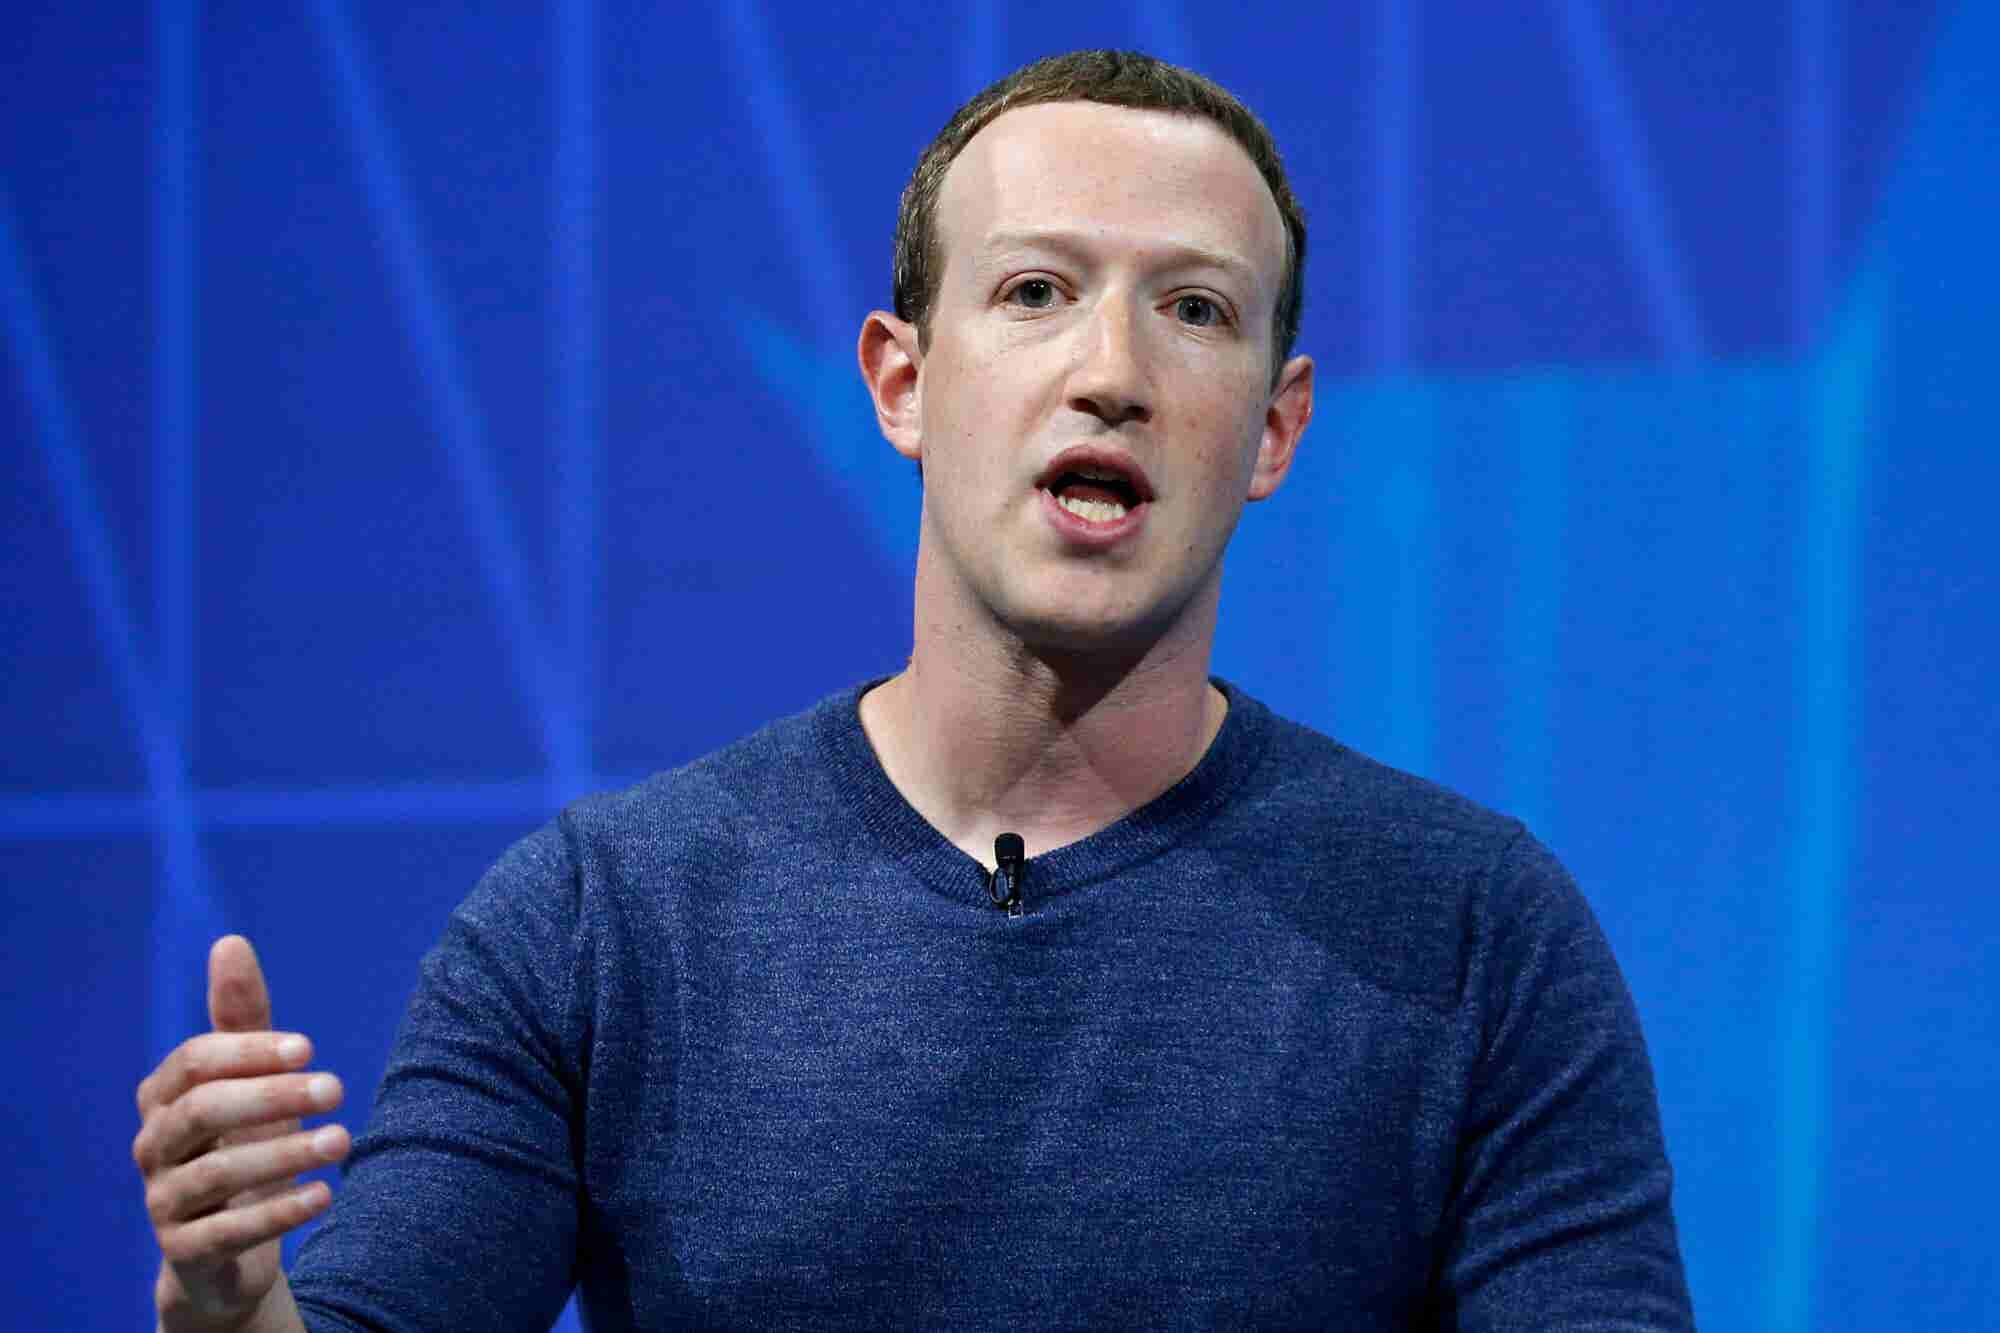 Mark Zuckerberg on Why Facebook Won't Remove 'Fake News' and 3 Other Takeaways From His Recent Interview